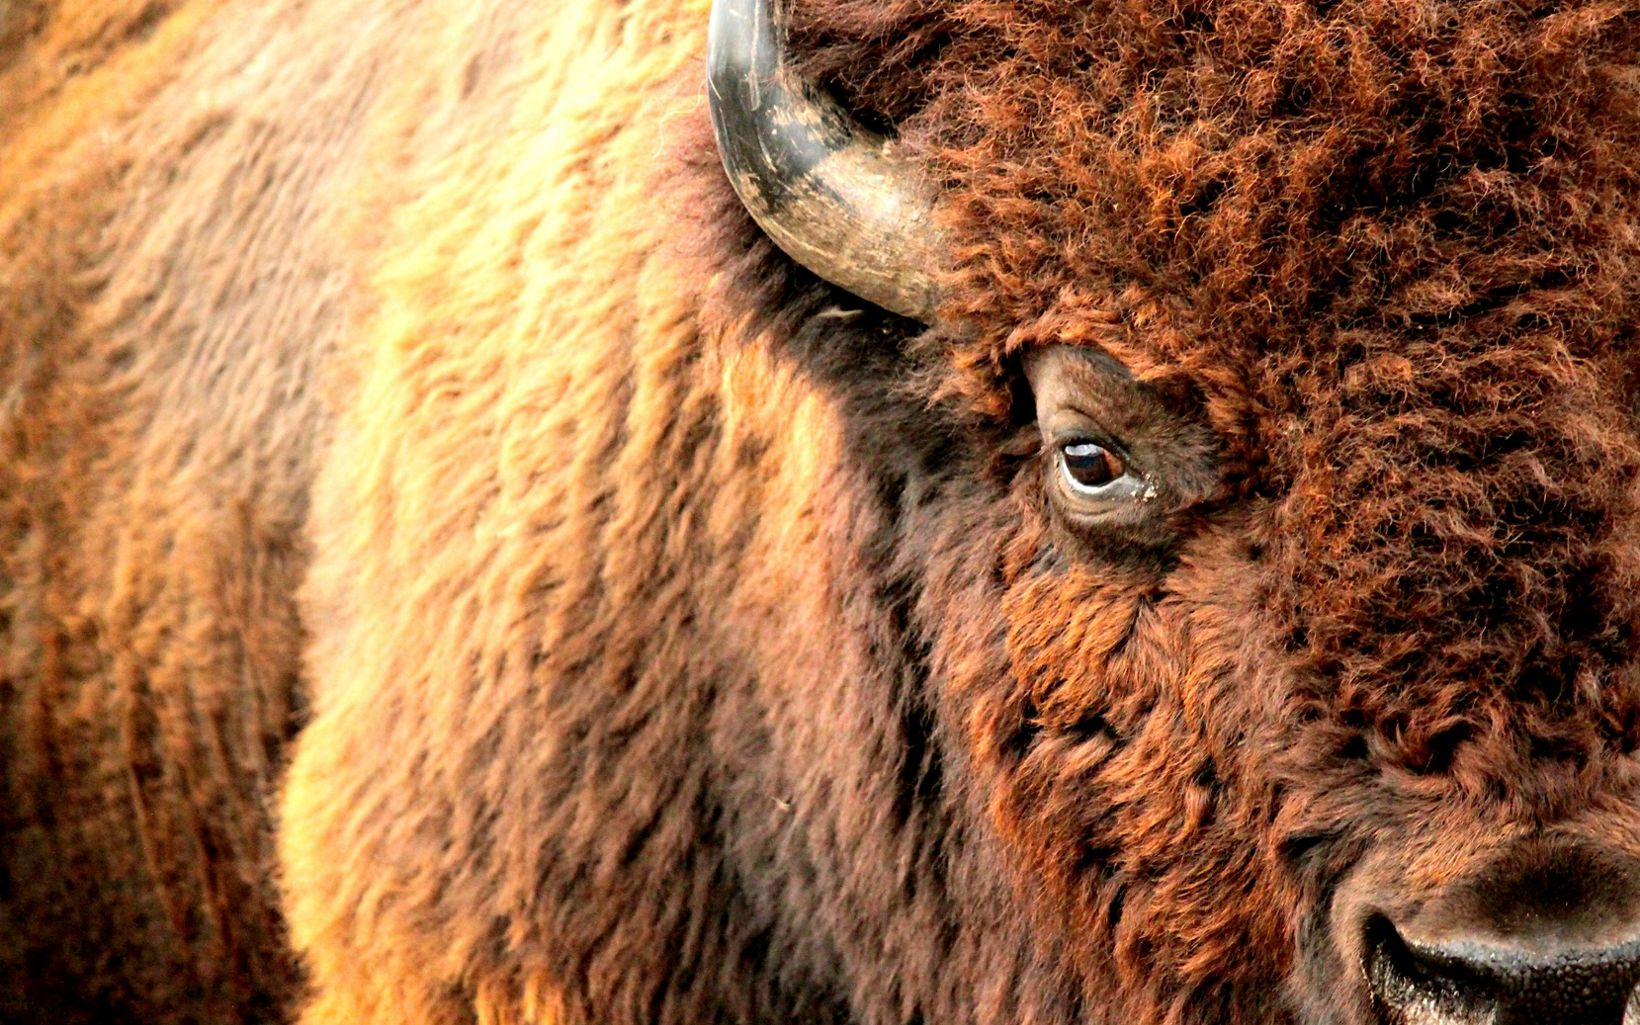 Closeup of Bison